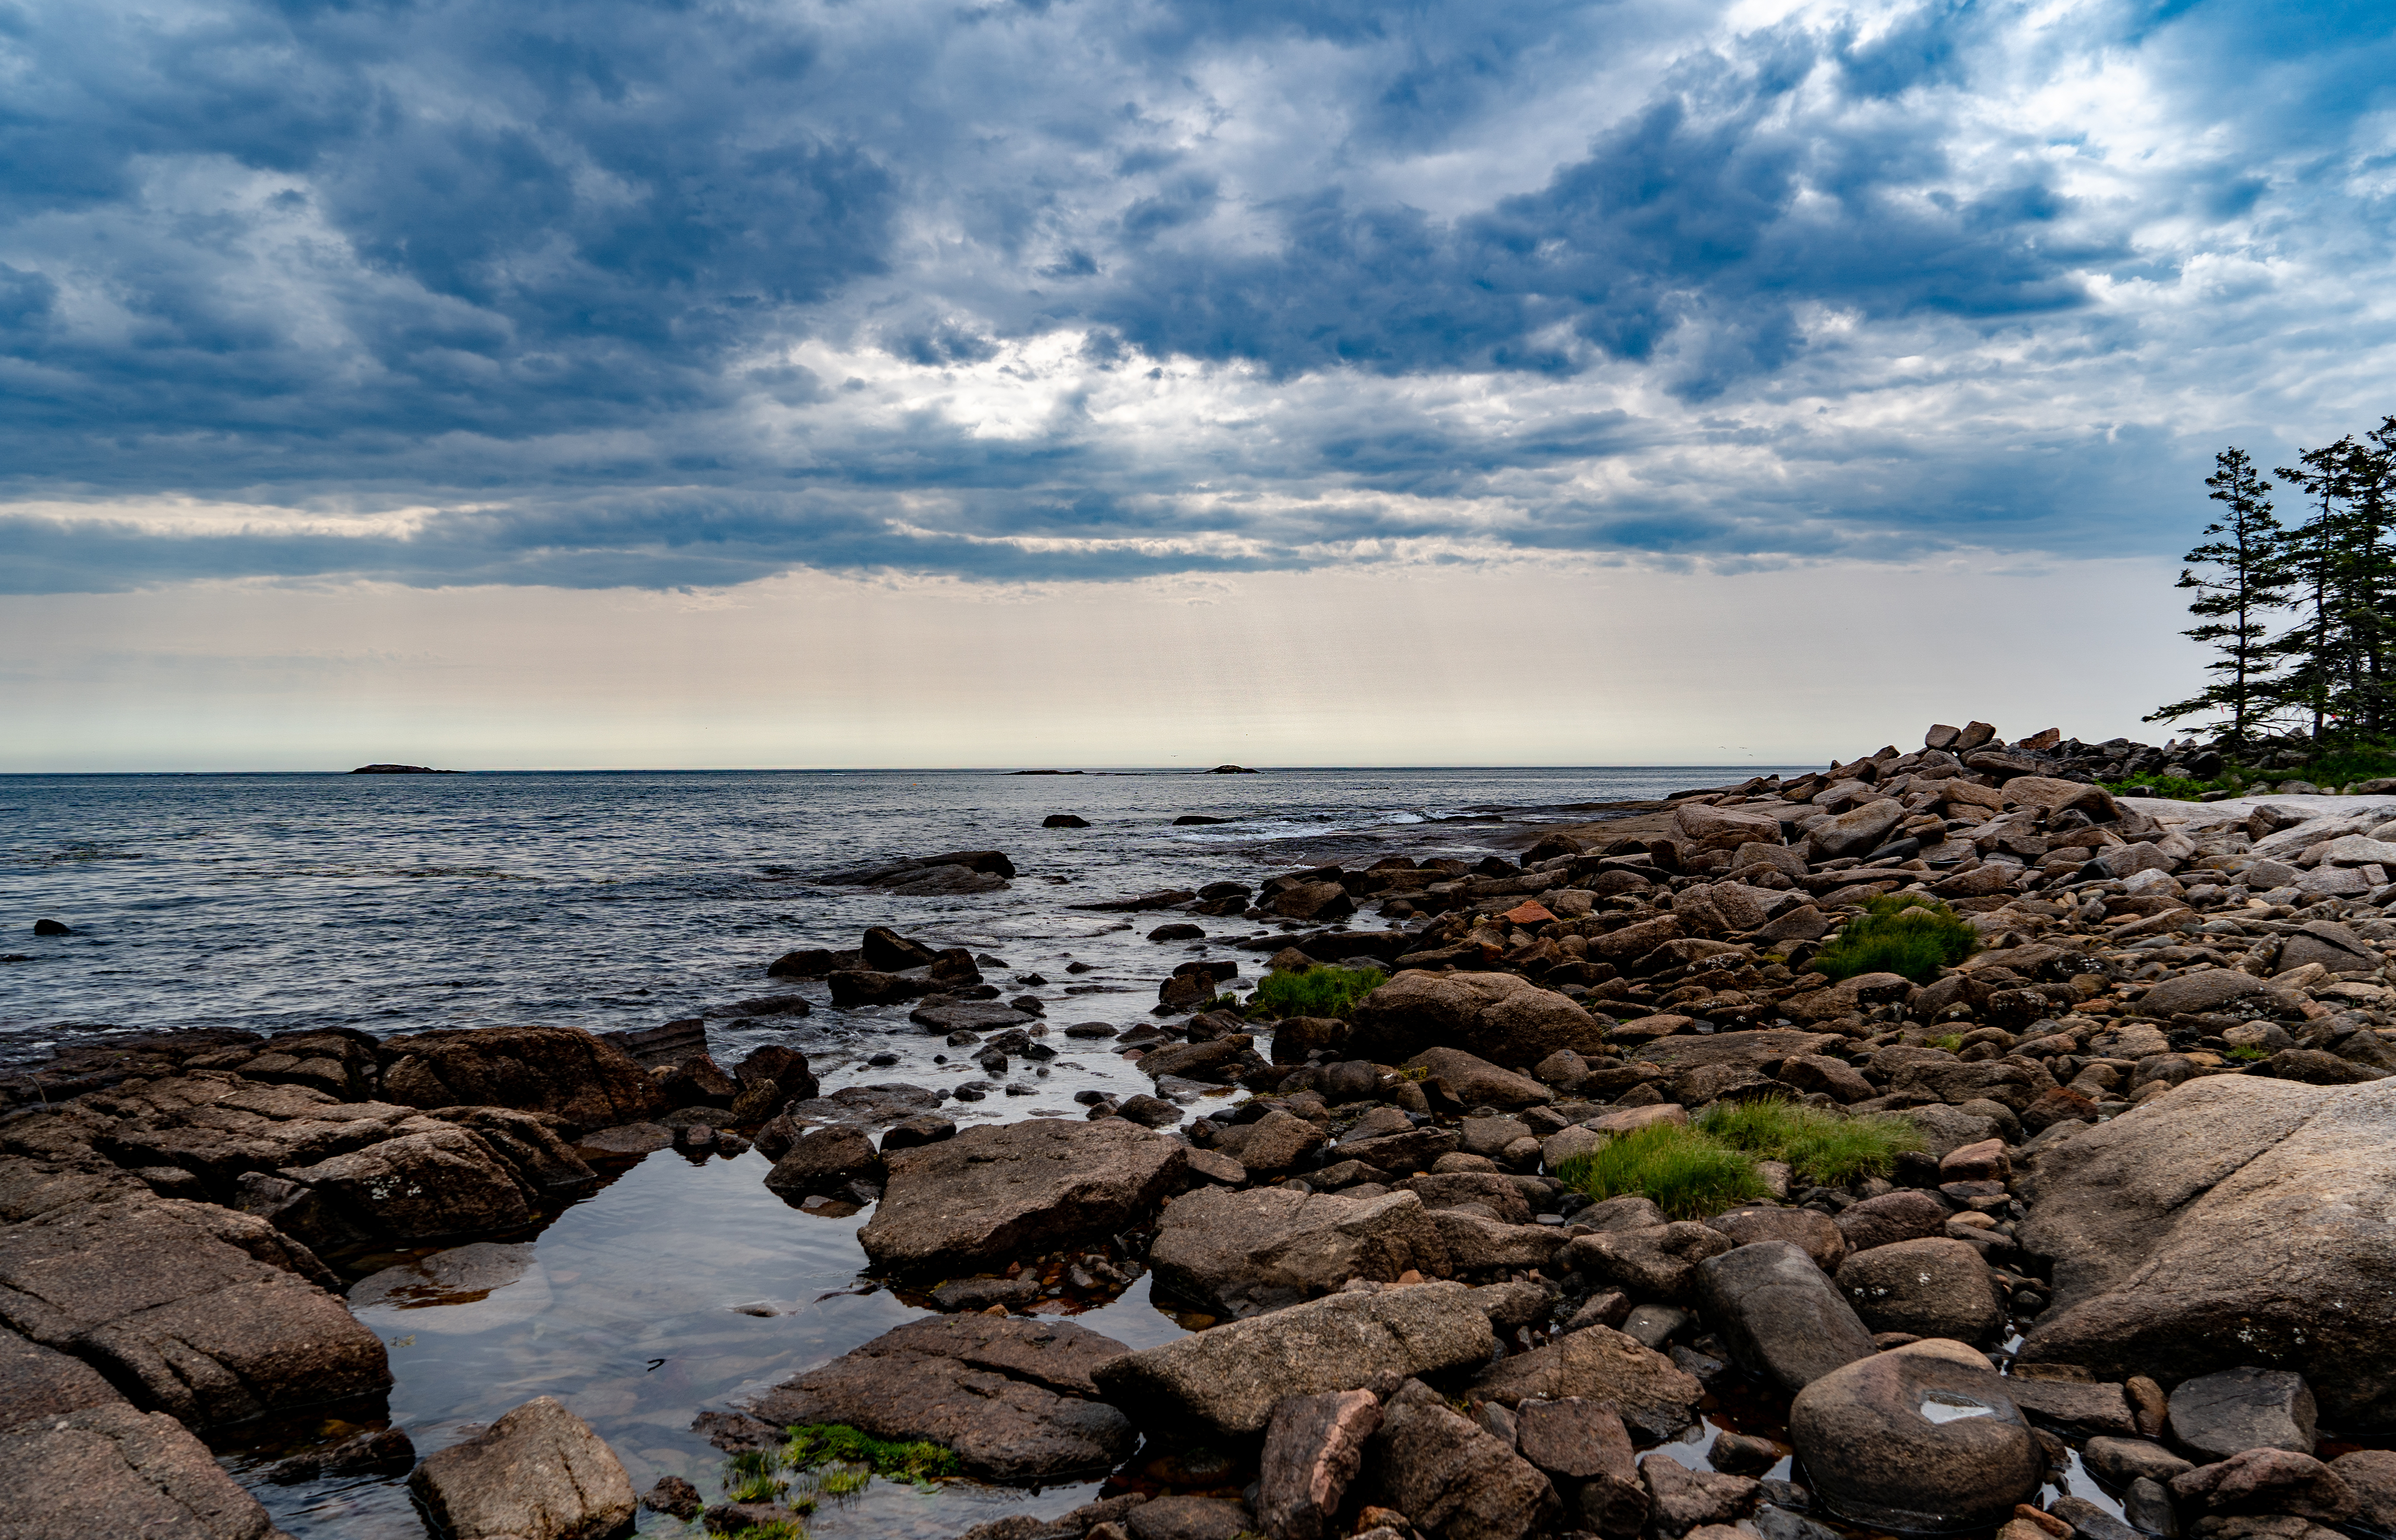 Dramatic clouds hover over a shoreline scene on Great Wass Island